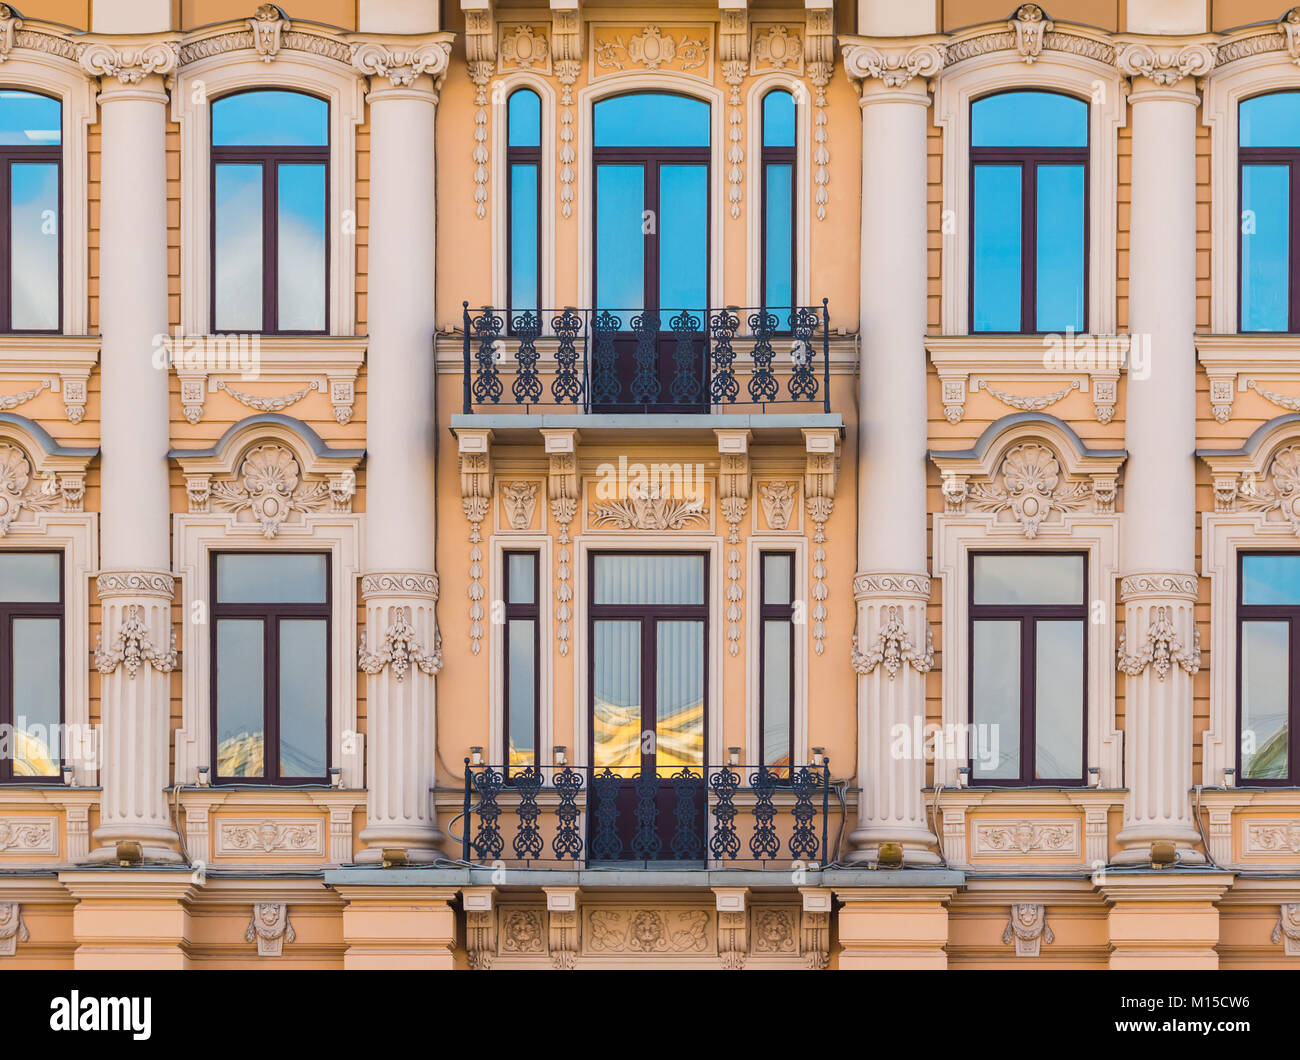 Several windows in a row and balconies on the facade of the urban historic building front view, Saint Petersburg, - Stock Image